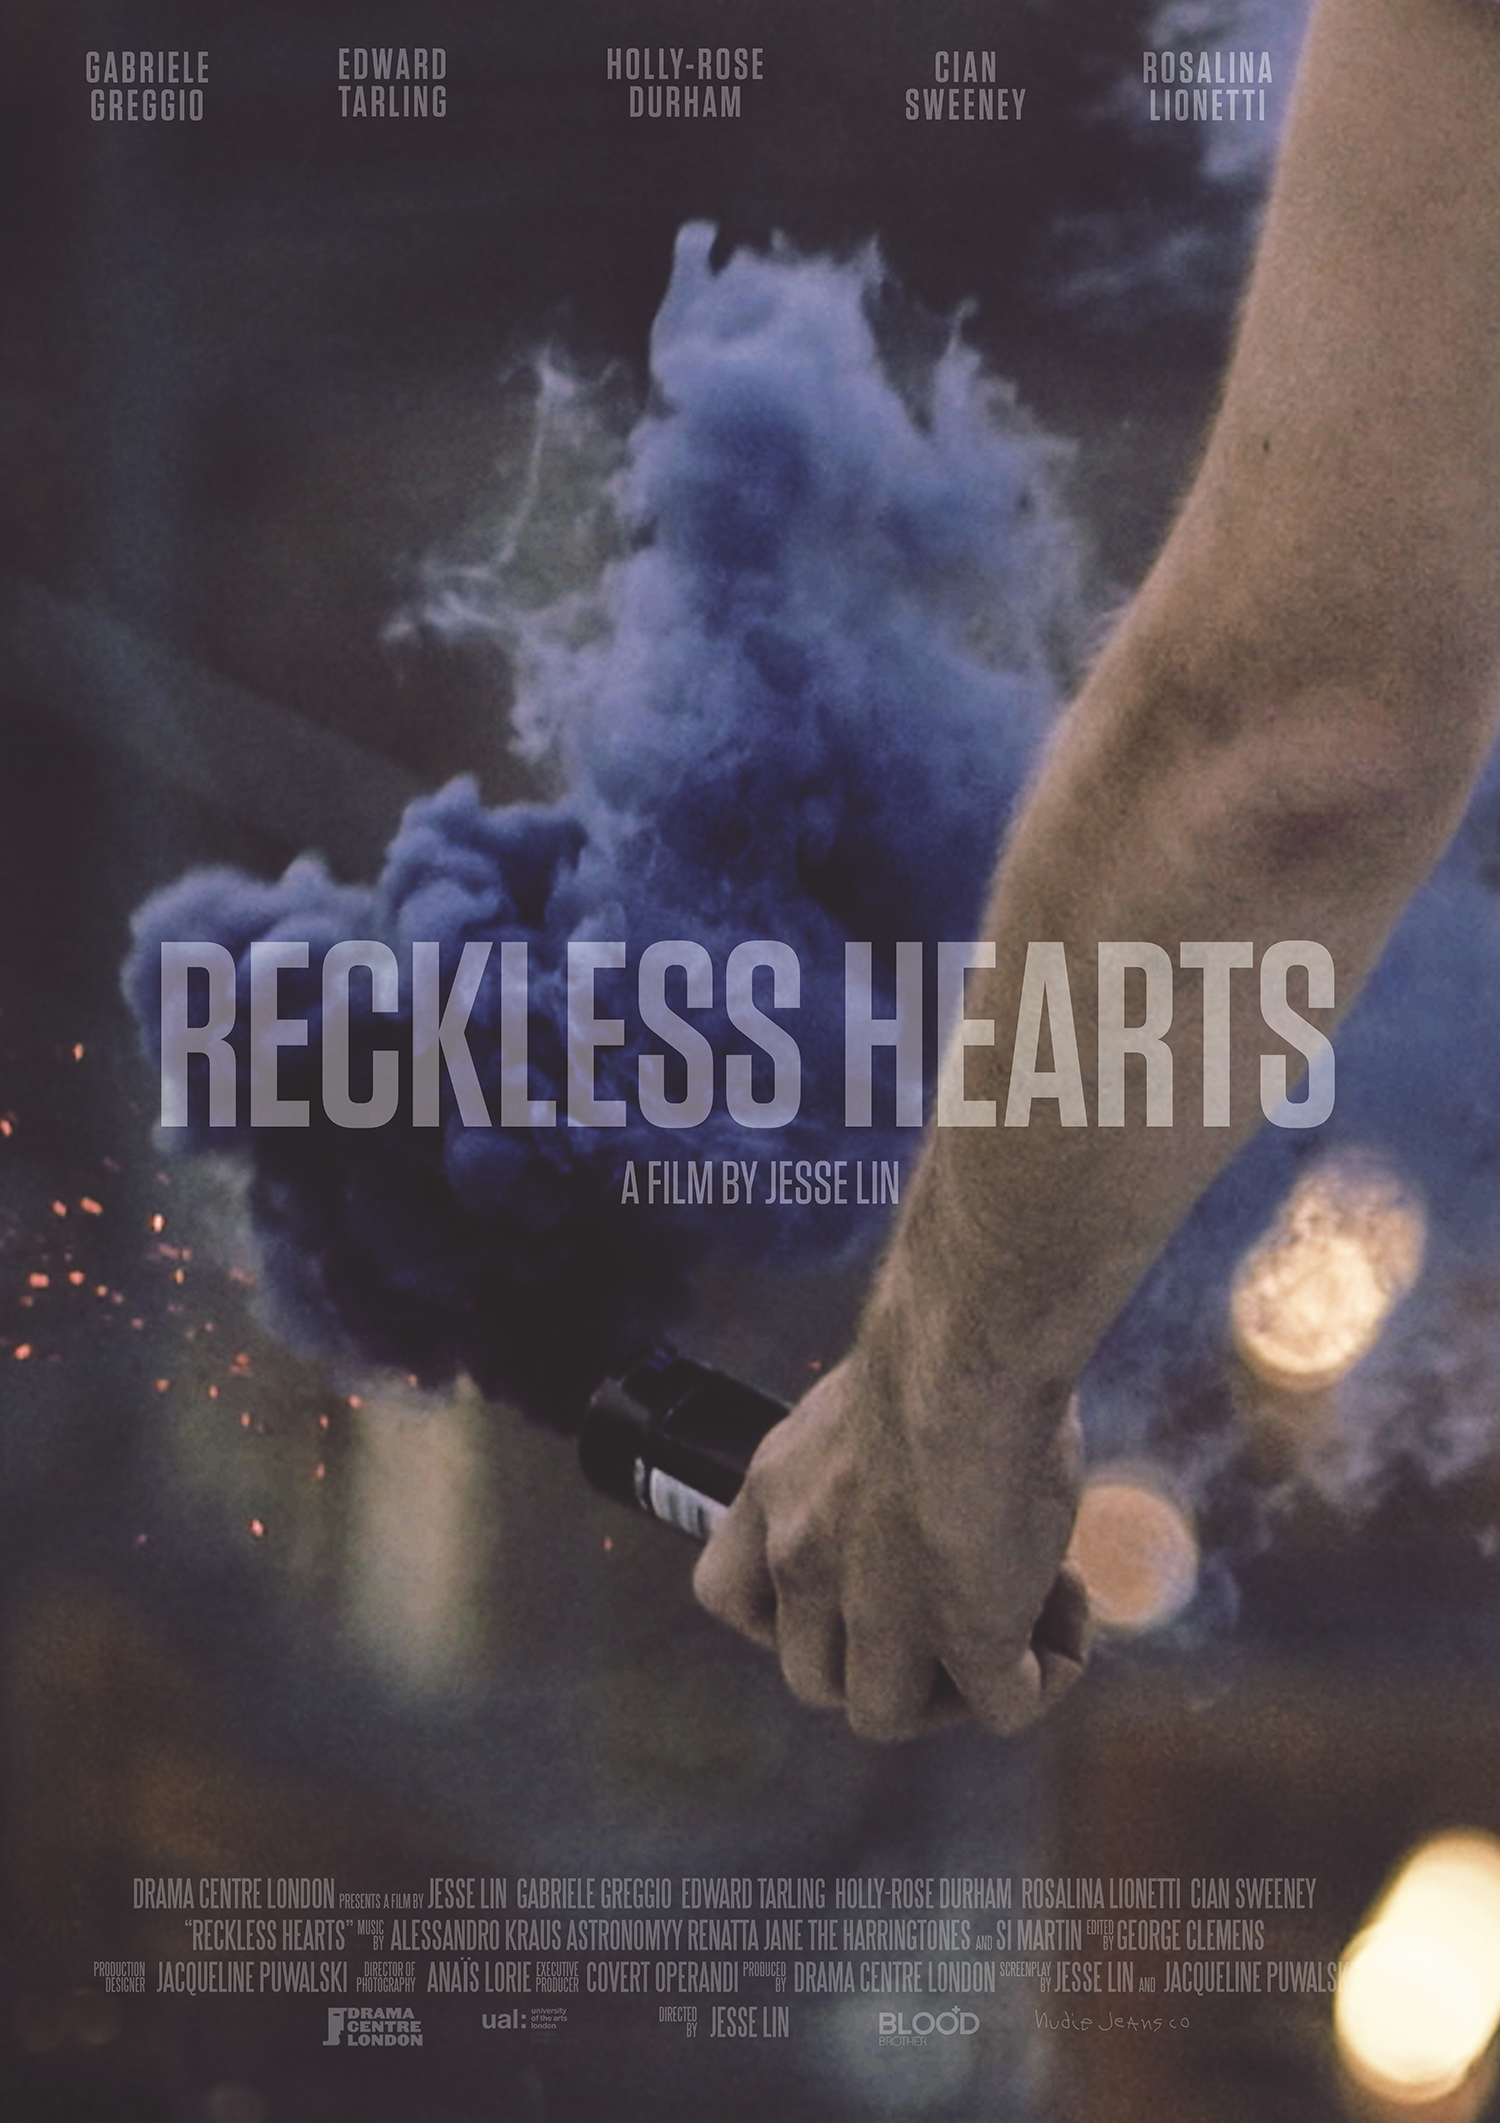 Reckless+Hearts+Movie+Poster+Jesse+Lin+1500.jpg